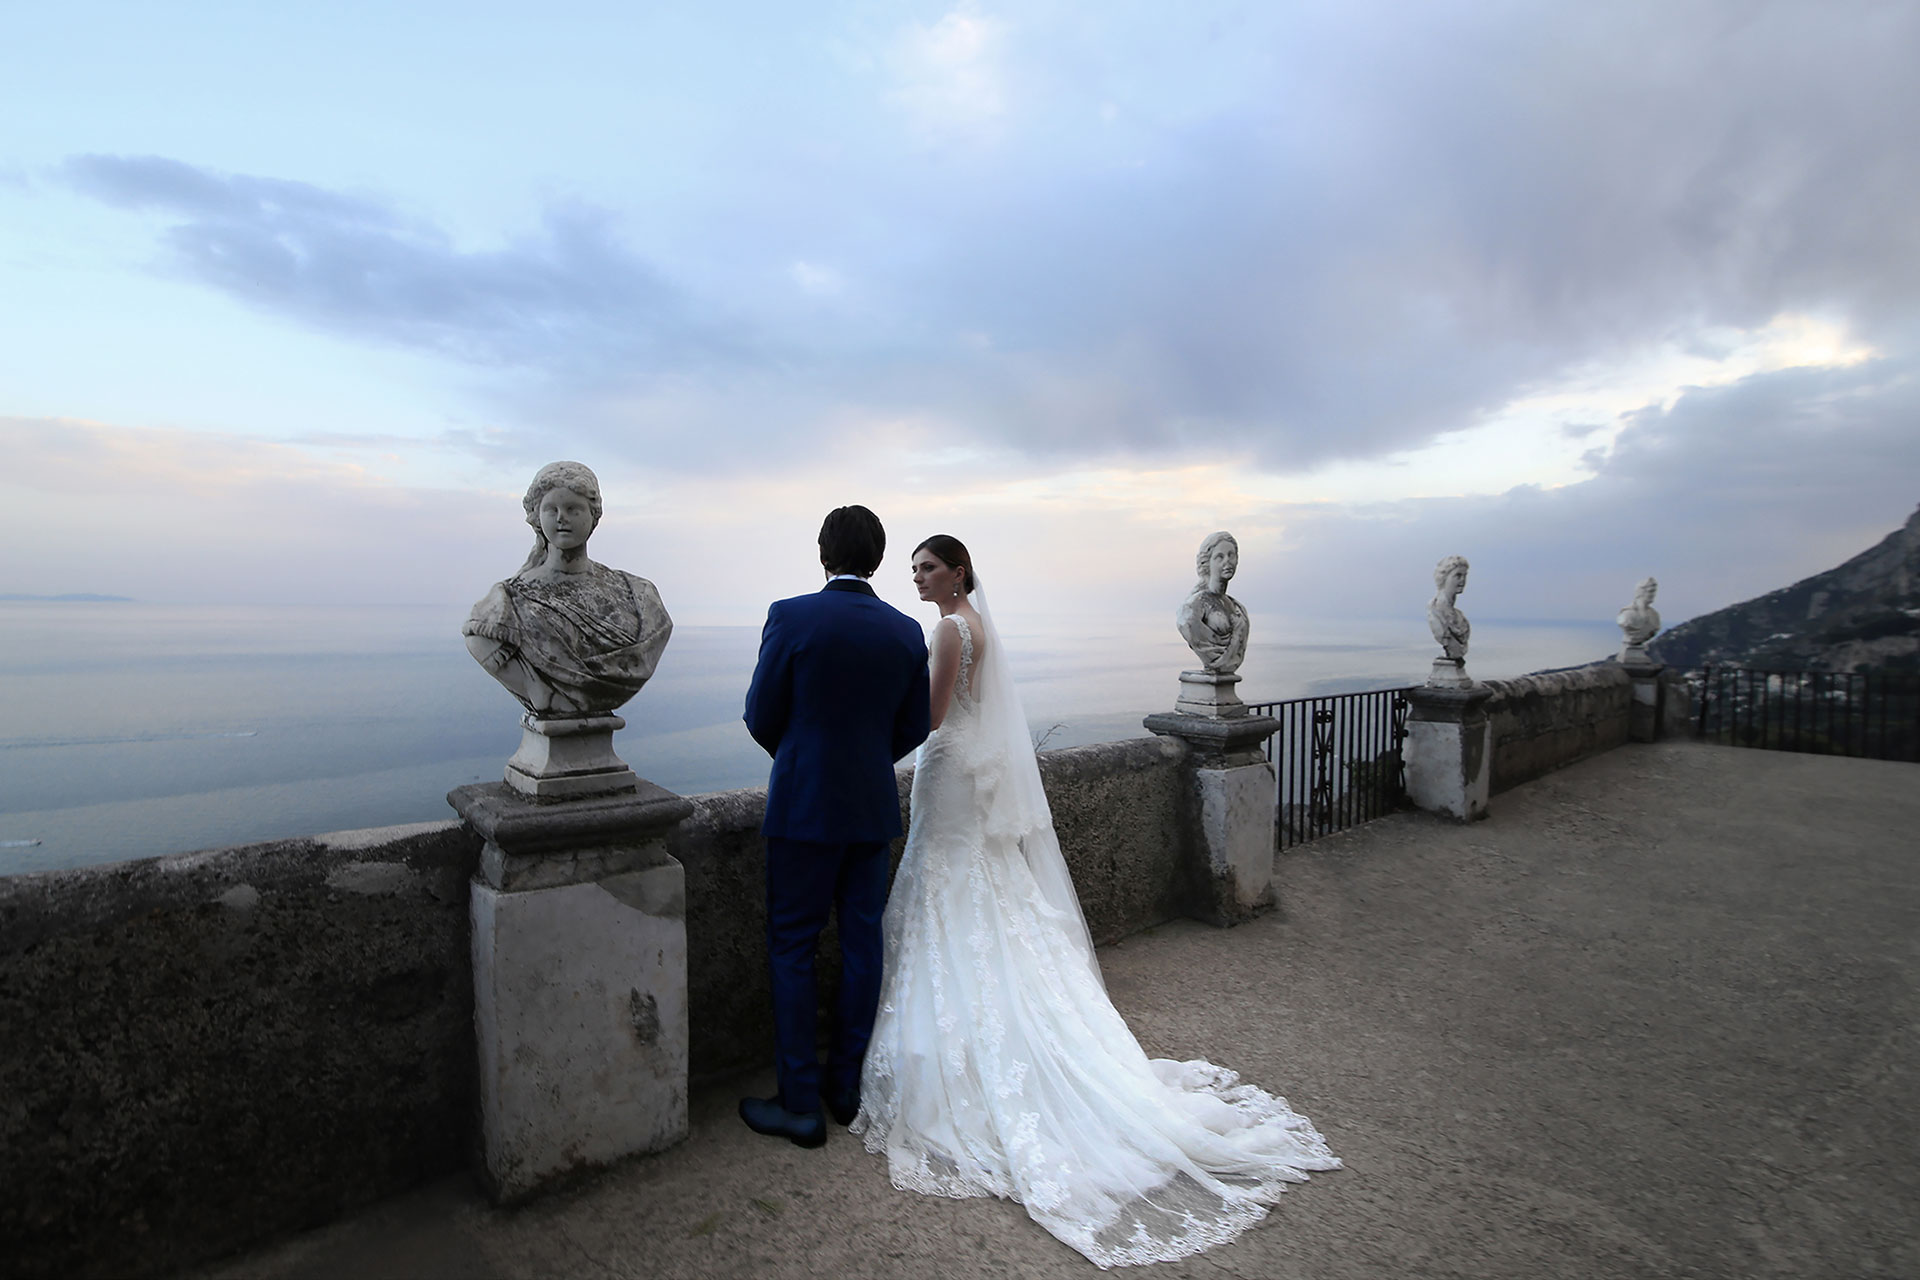 Jewish Vows Symbolic Civil Protestant Blessing Elopement Wedding in Ravello Villa Cimbrone Amalfi Coast Claudia Francese Photography Sisters